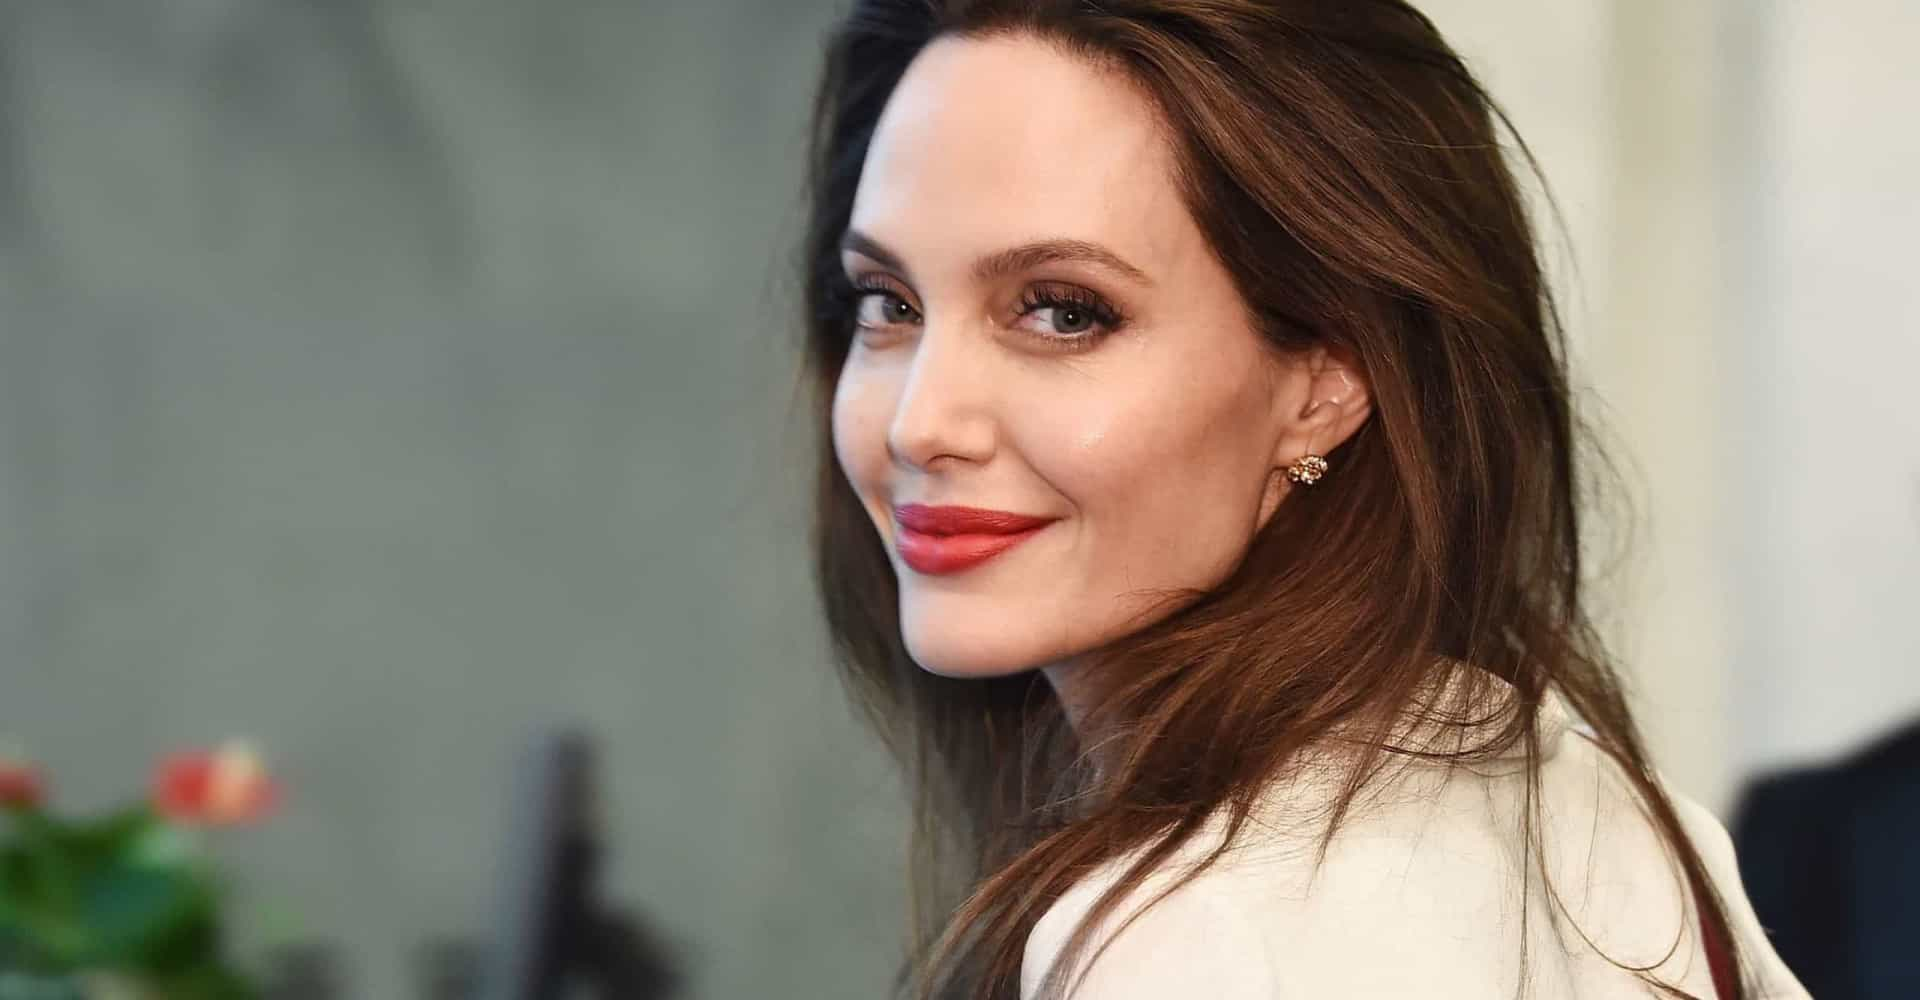 Rebel to role model: Angelina Jolie's life and career